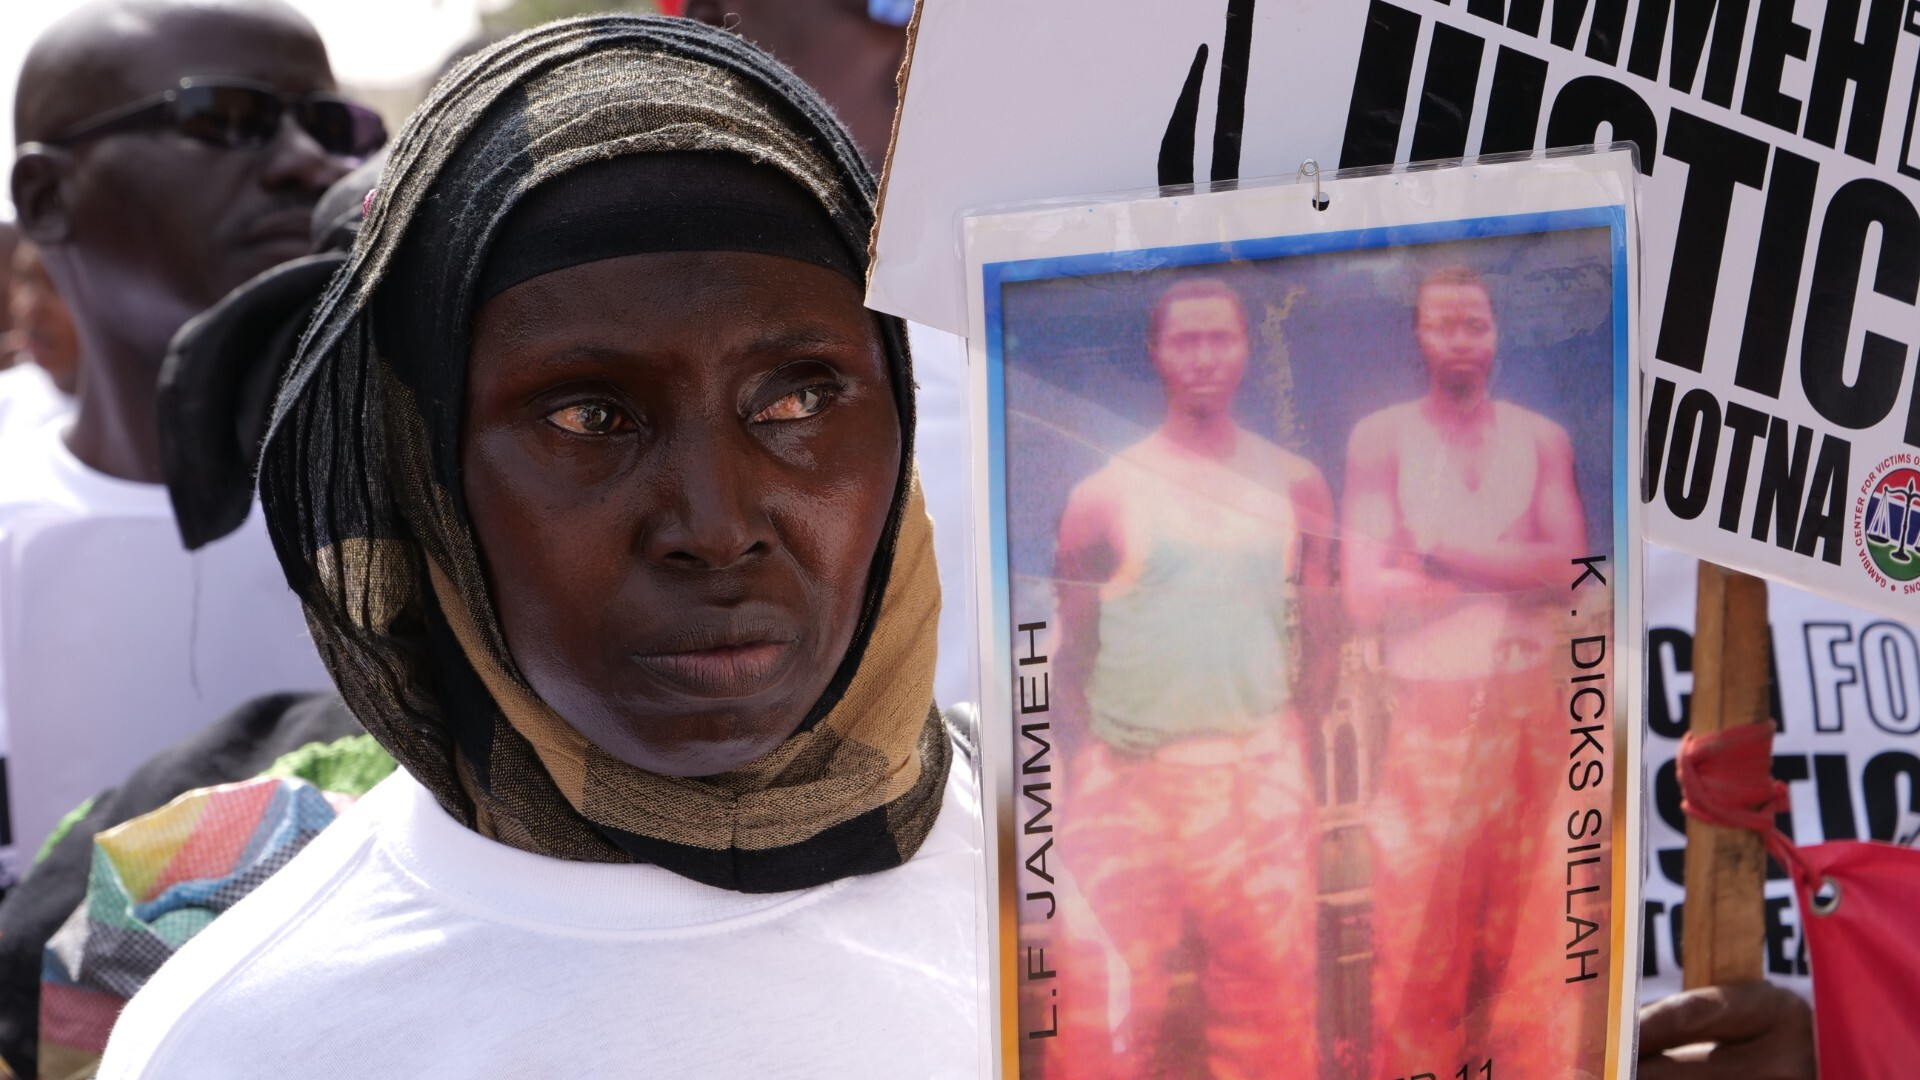 Still reeling from the Jammeh years, Gambians wait for justice